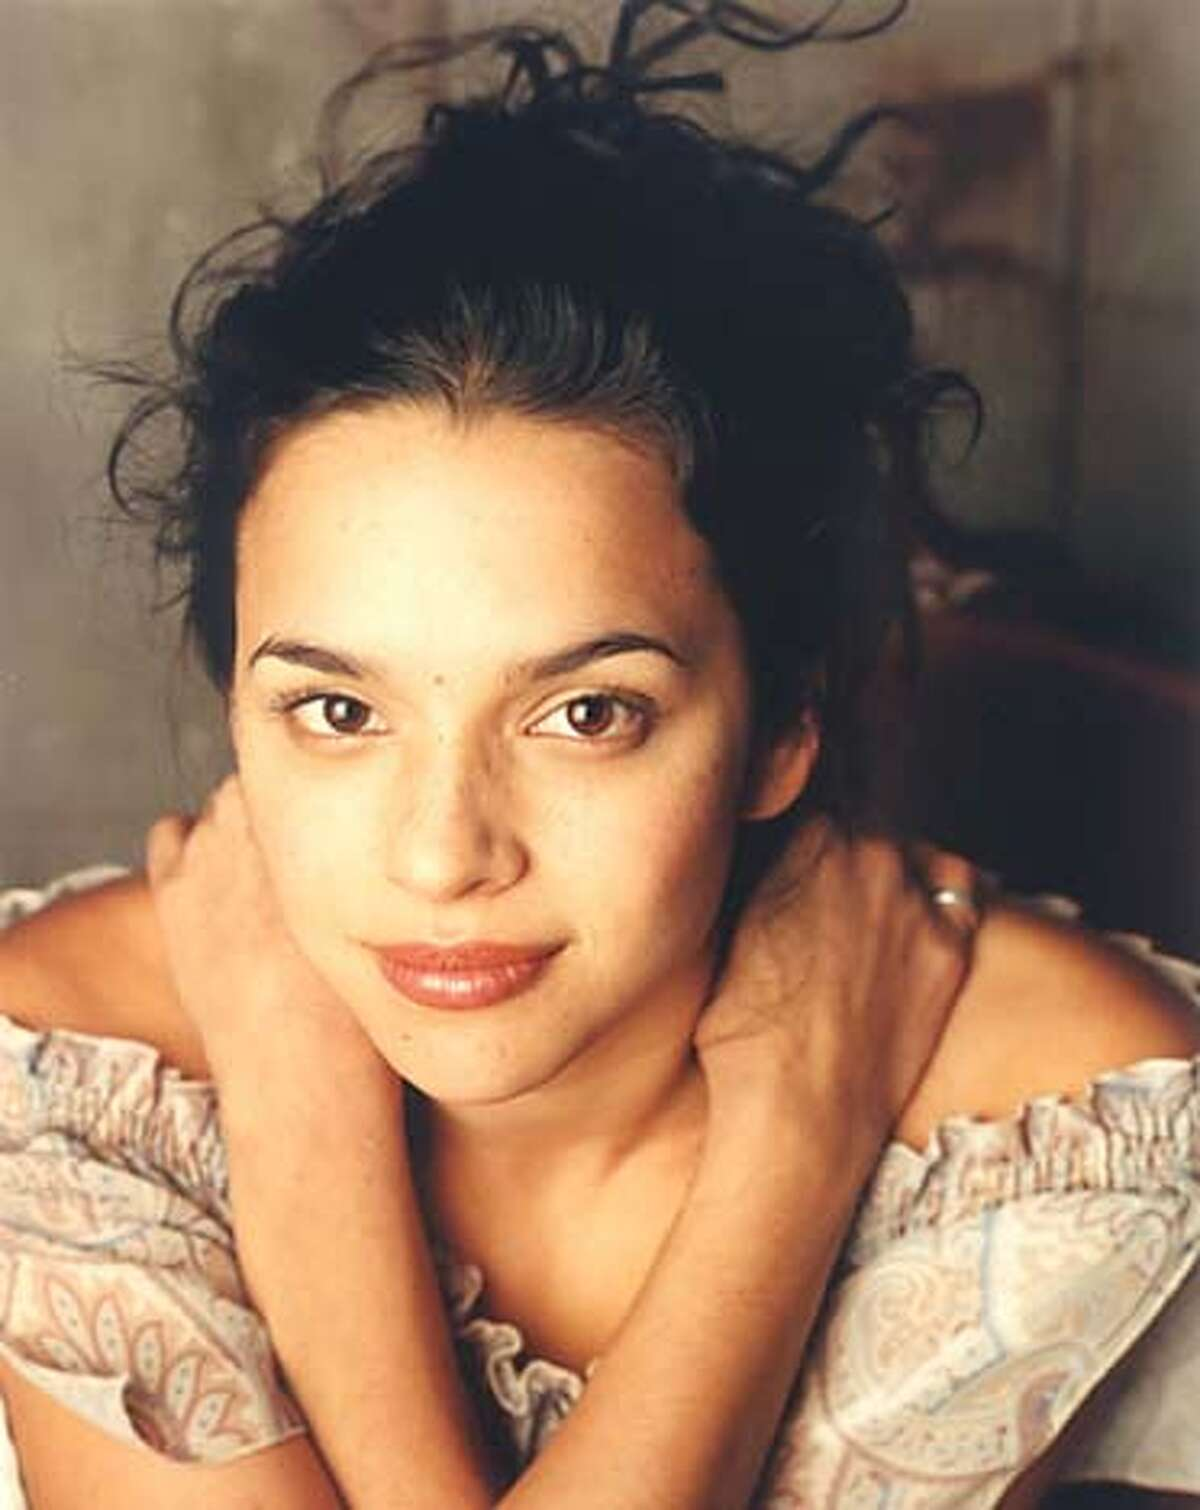 Norah Jones and her trio perform at 7:30 p.m. Saturday at the Mountain Winery in Saratoga.